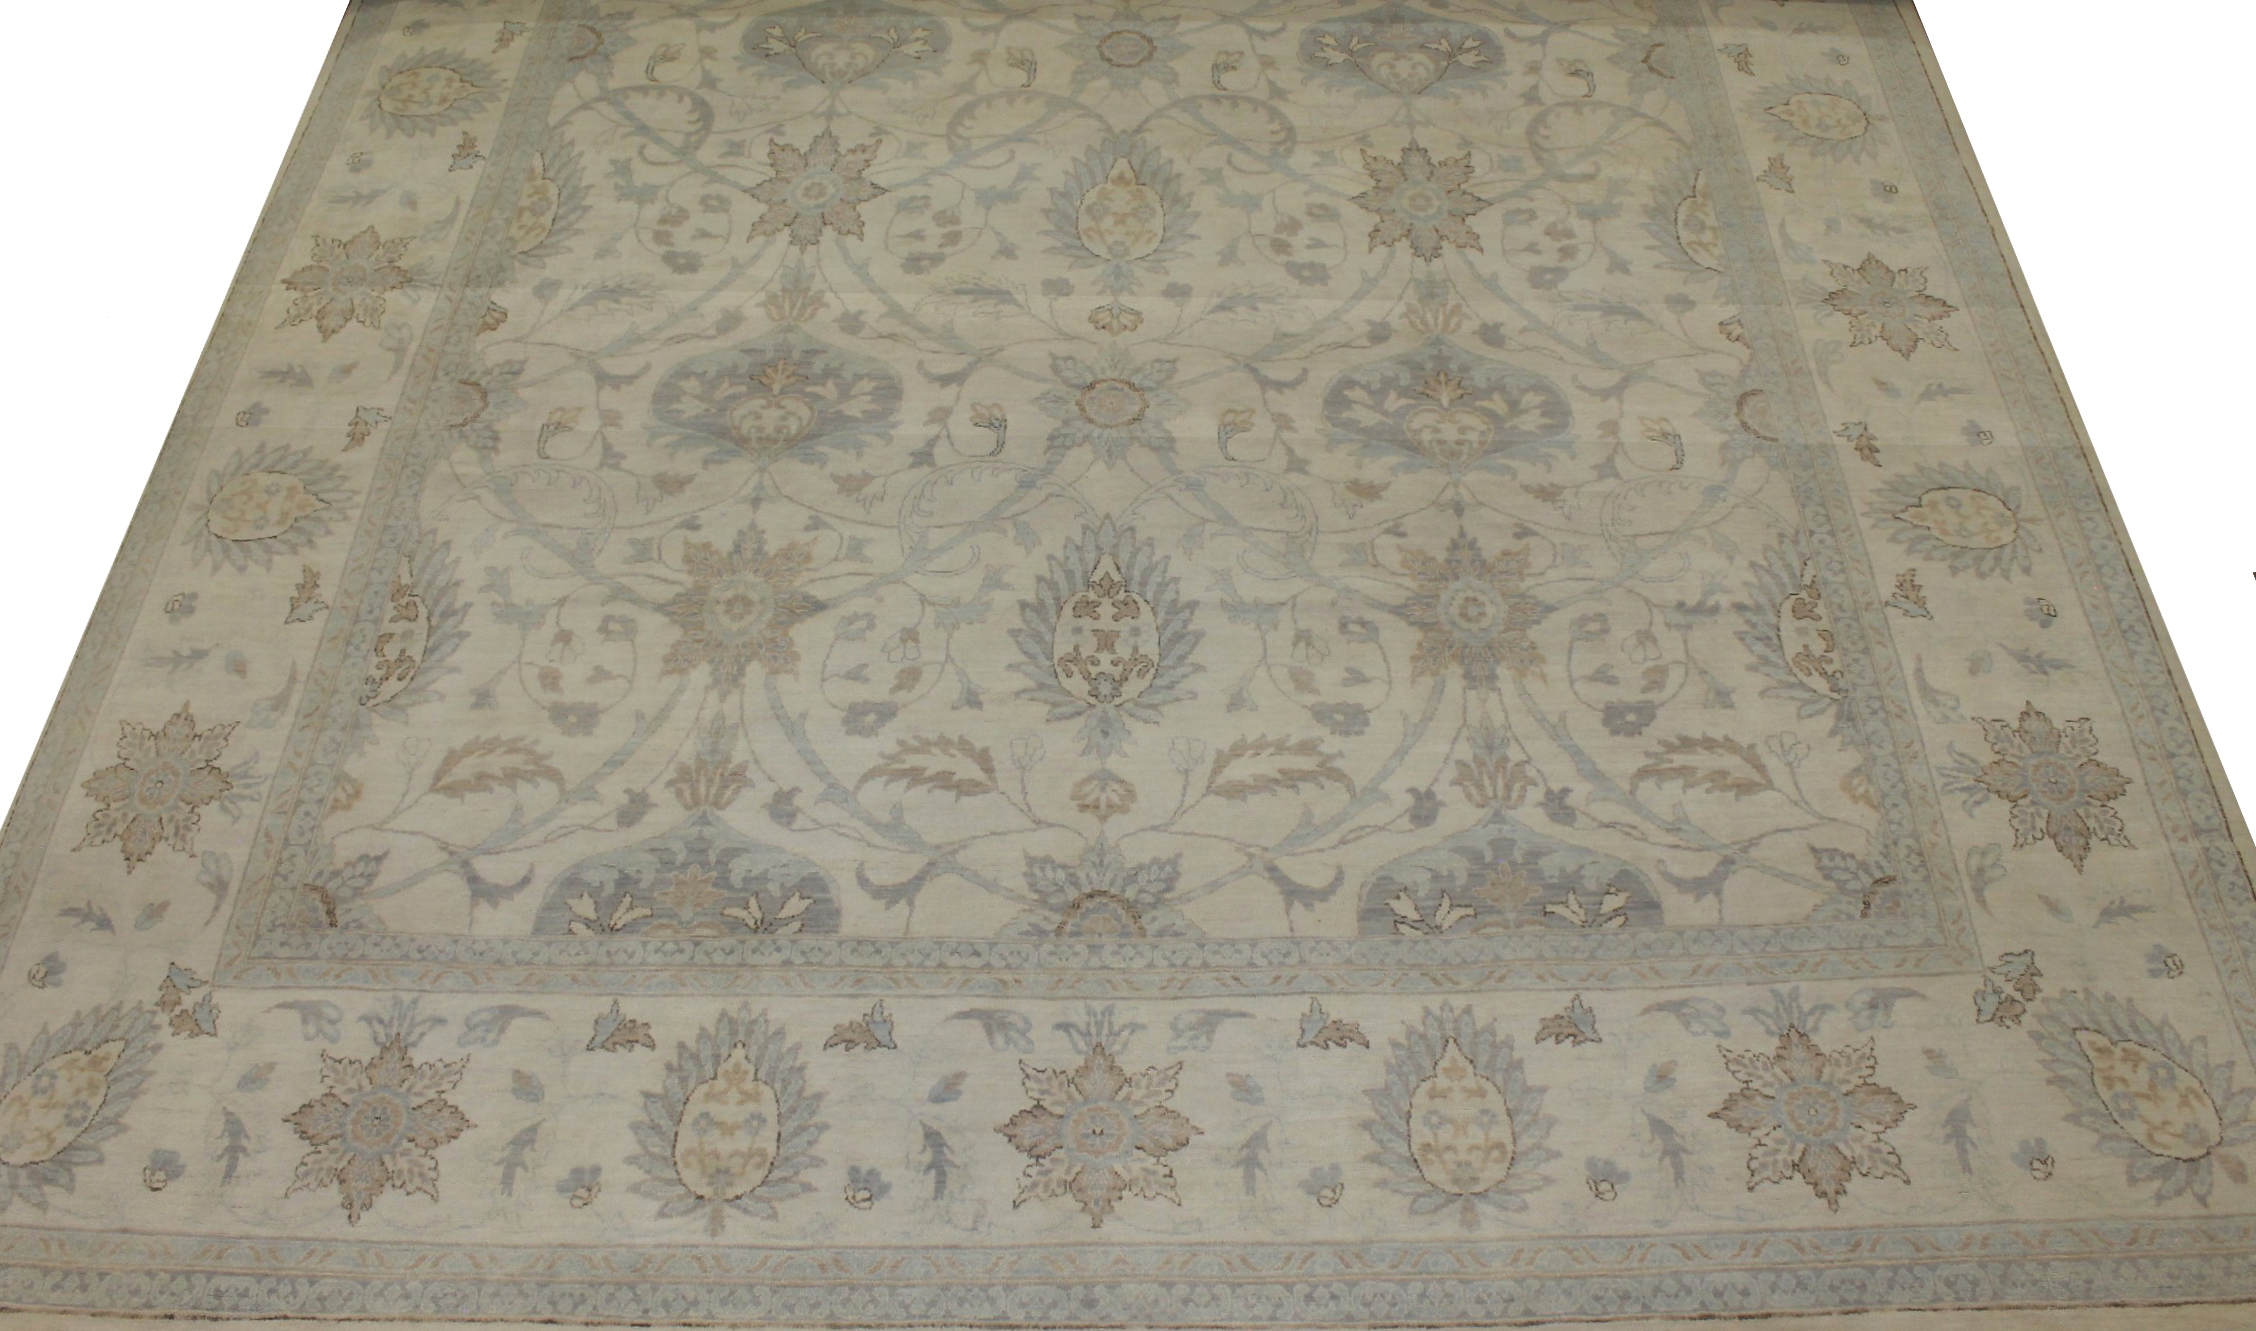 10x14 Antique Revival Hand Knotted Wool Area Rug - MR19114